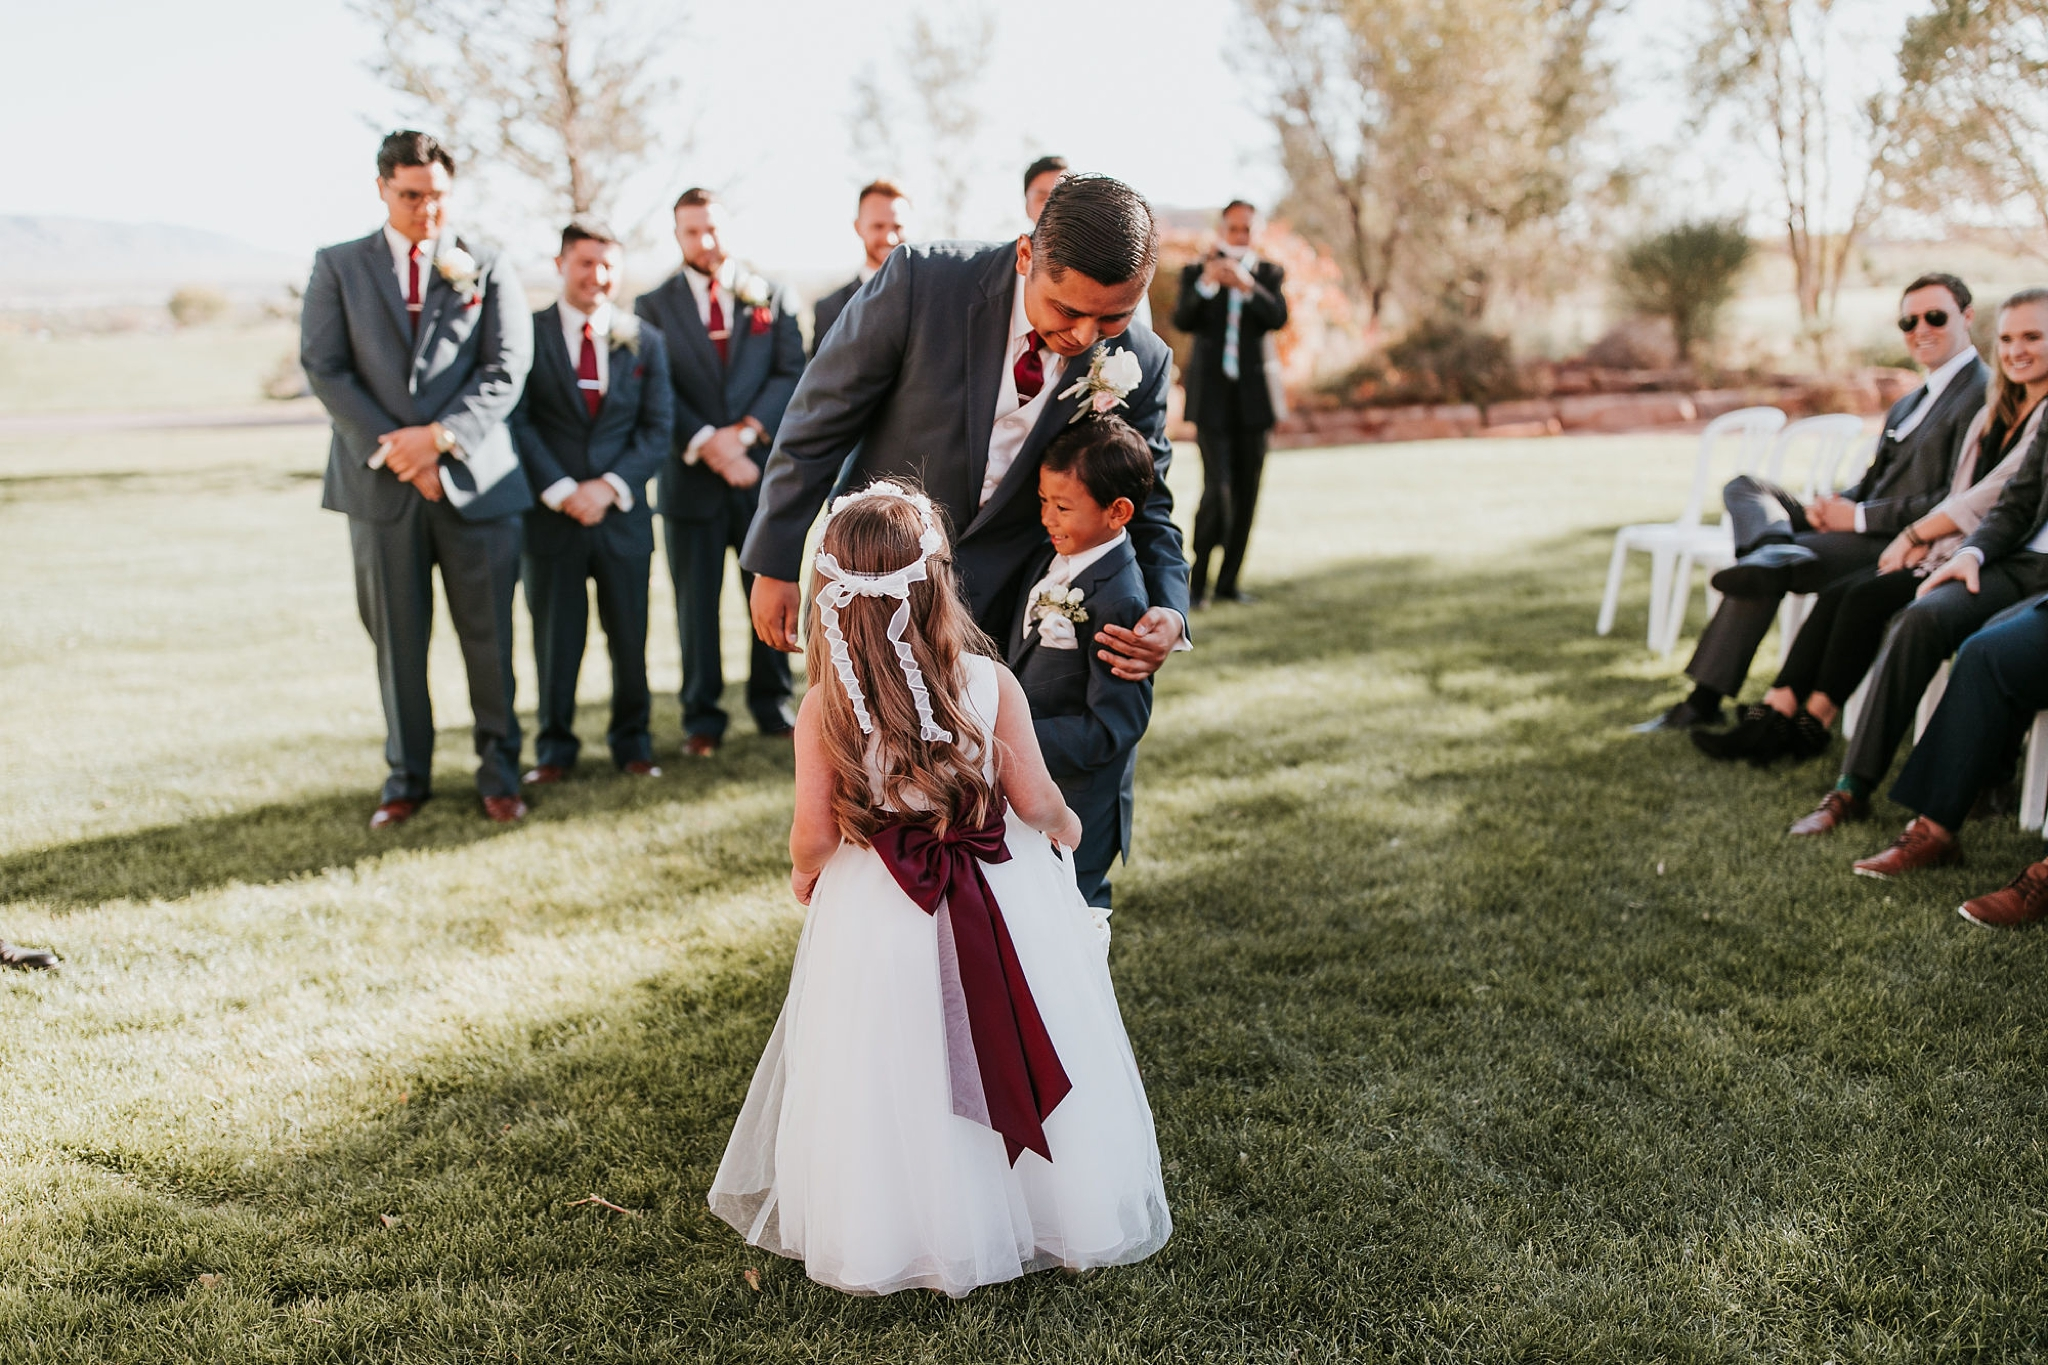 Alicia+lucia+photography+-+albuquerque+wedding+photographer+-+santa+fe+wedding+photography+-+new+mexico+wedding+photographer+-+new+mexico+wedding+-+flower+girl+-+wedding+flower+girl_0029.jpg